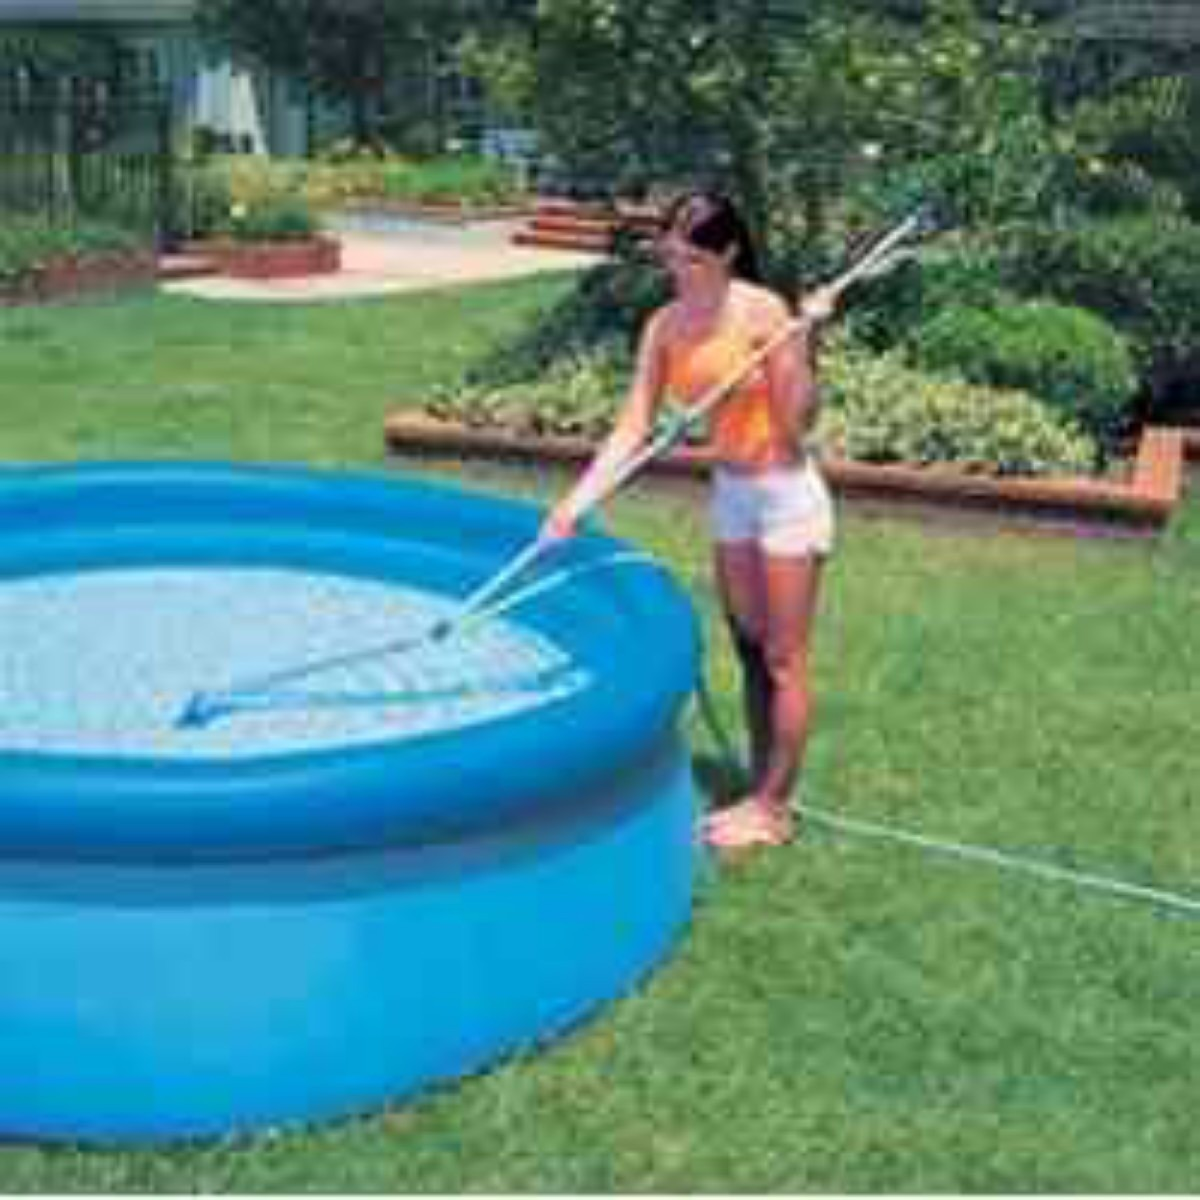 Piscinas Intex Site Limpeza Piscina Intex